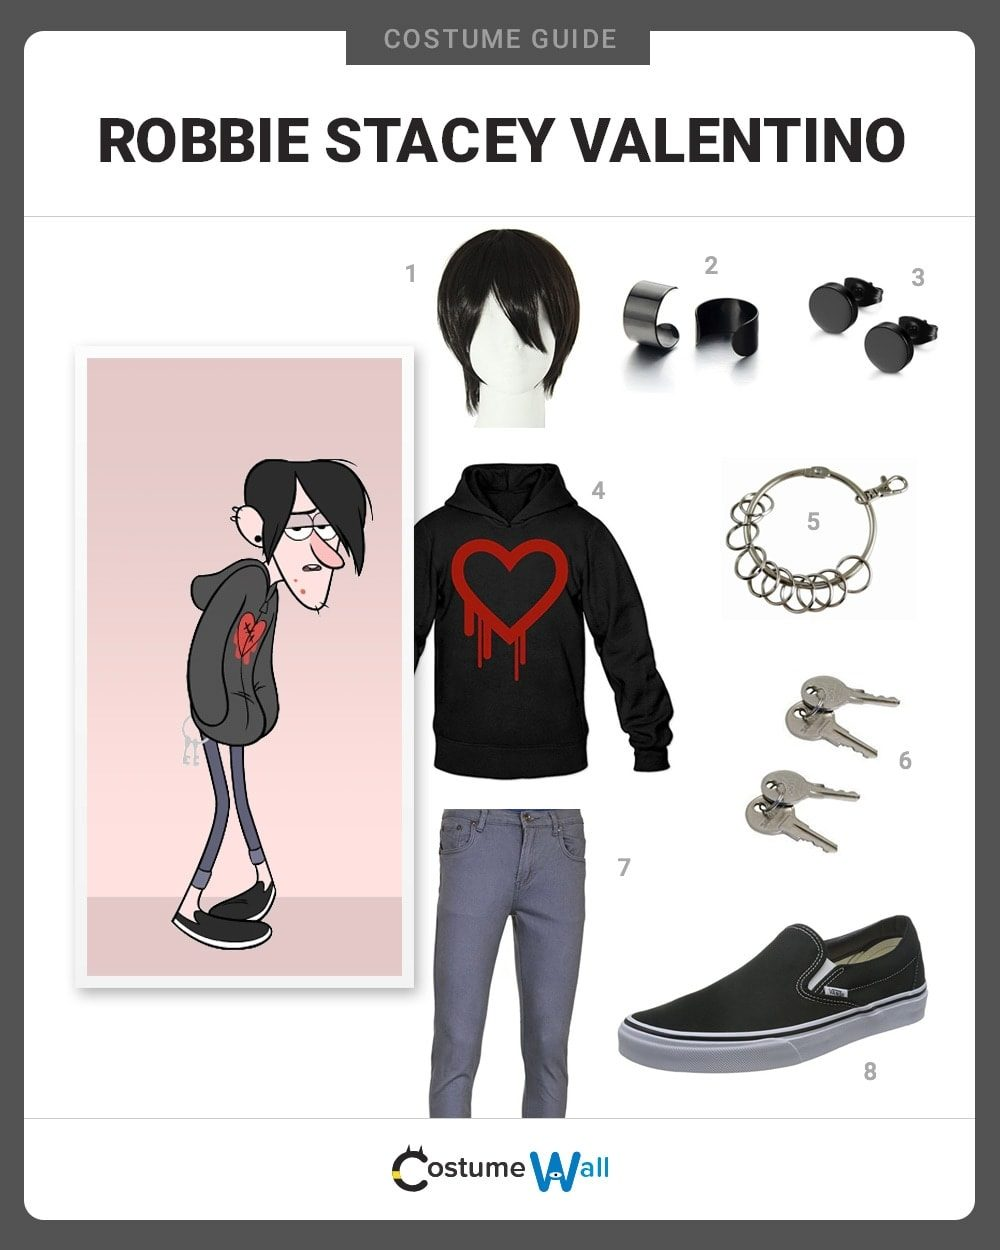 Robbie Stacey Valentino Costume Guide